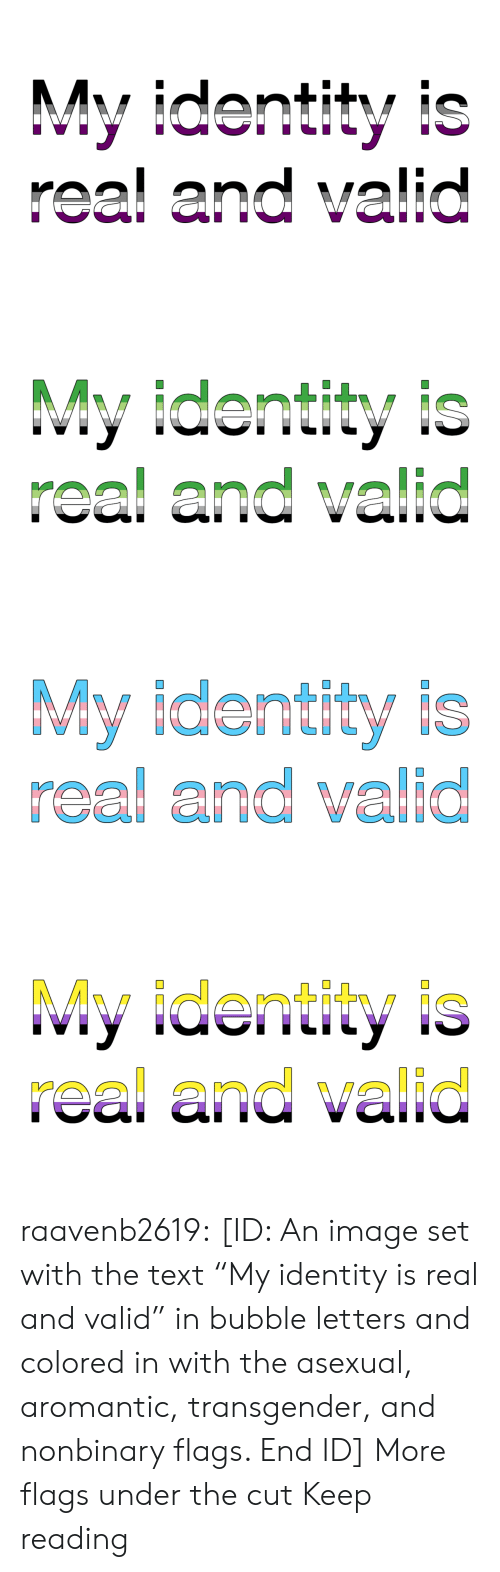 "Bubble: My identity is  real and valid   My identity is  real and valid   My identity is  real and valid   My identity is  real and valid raavenb2619:  [ID: An image set with the text ""My identity is real and valid"" in bubble letters and colored in with the asexual, aromantic, transgender, and nonbinary flags. End ID]  More flags under the cut  Keep reading"